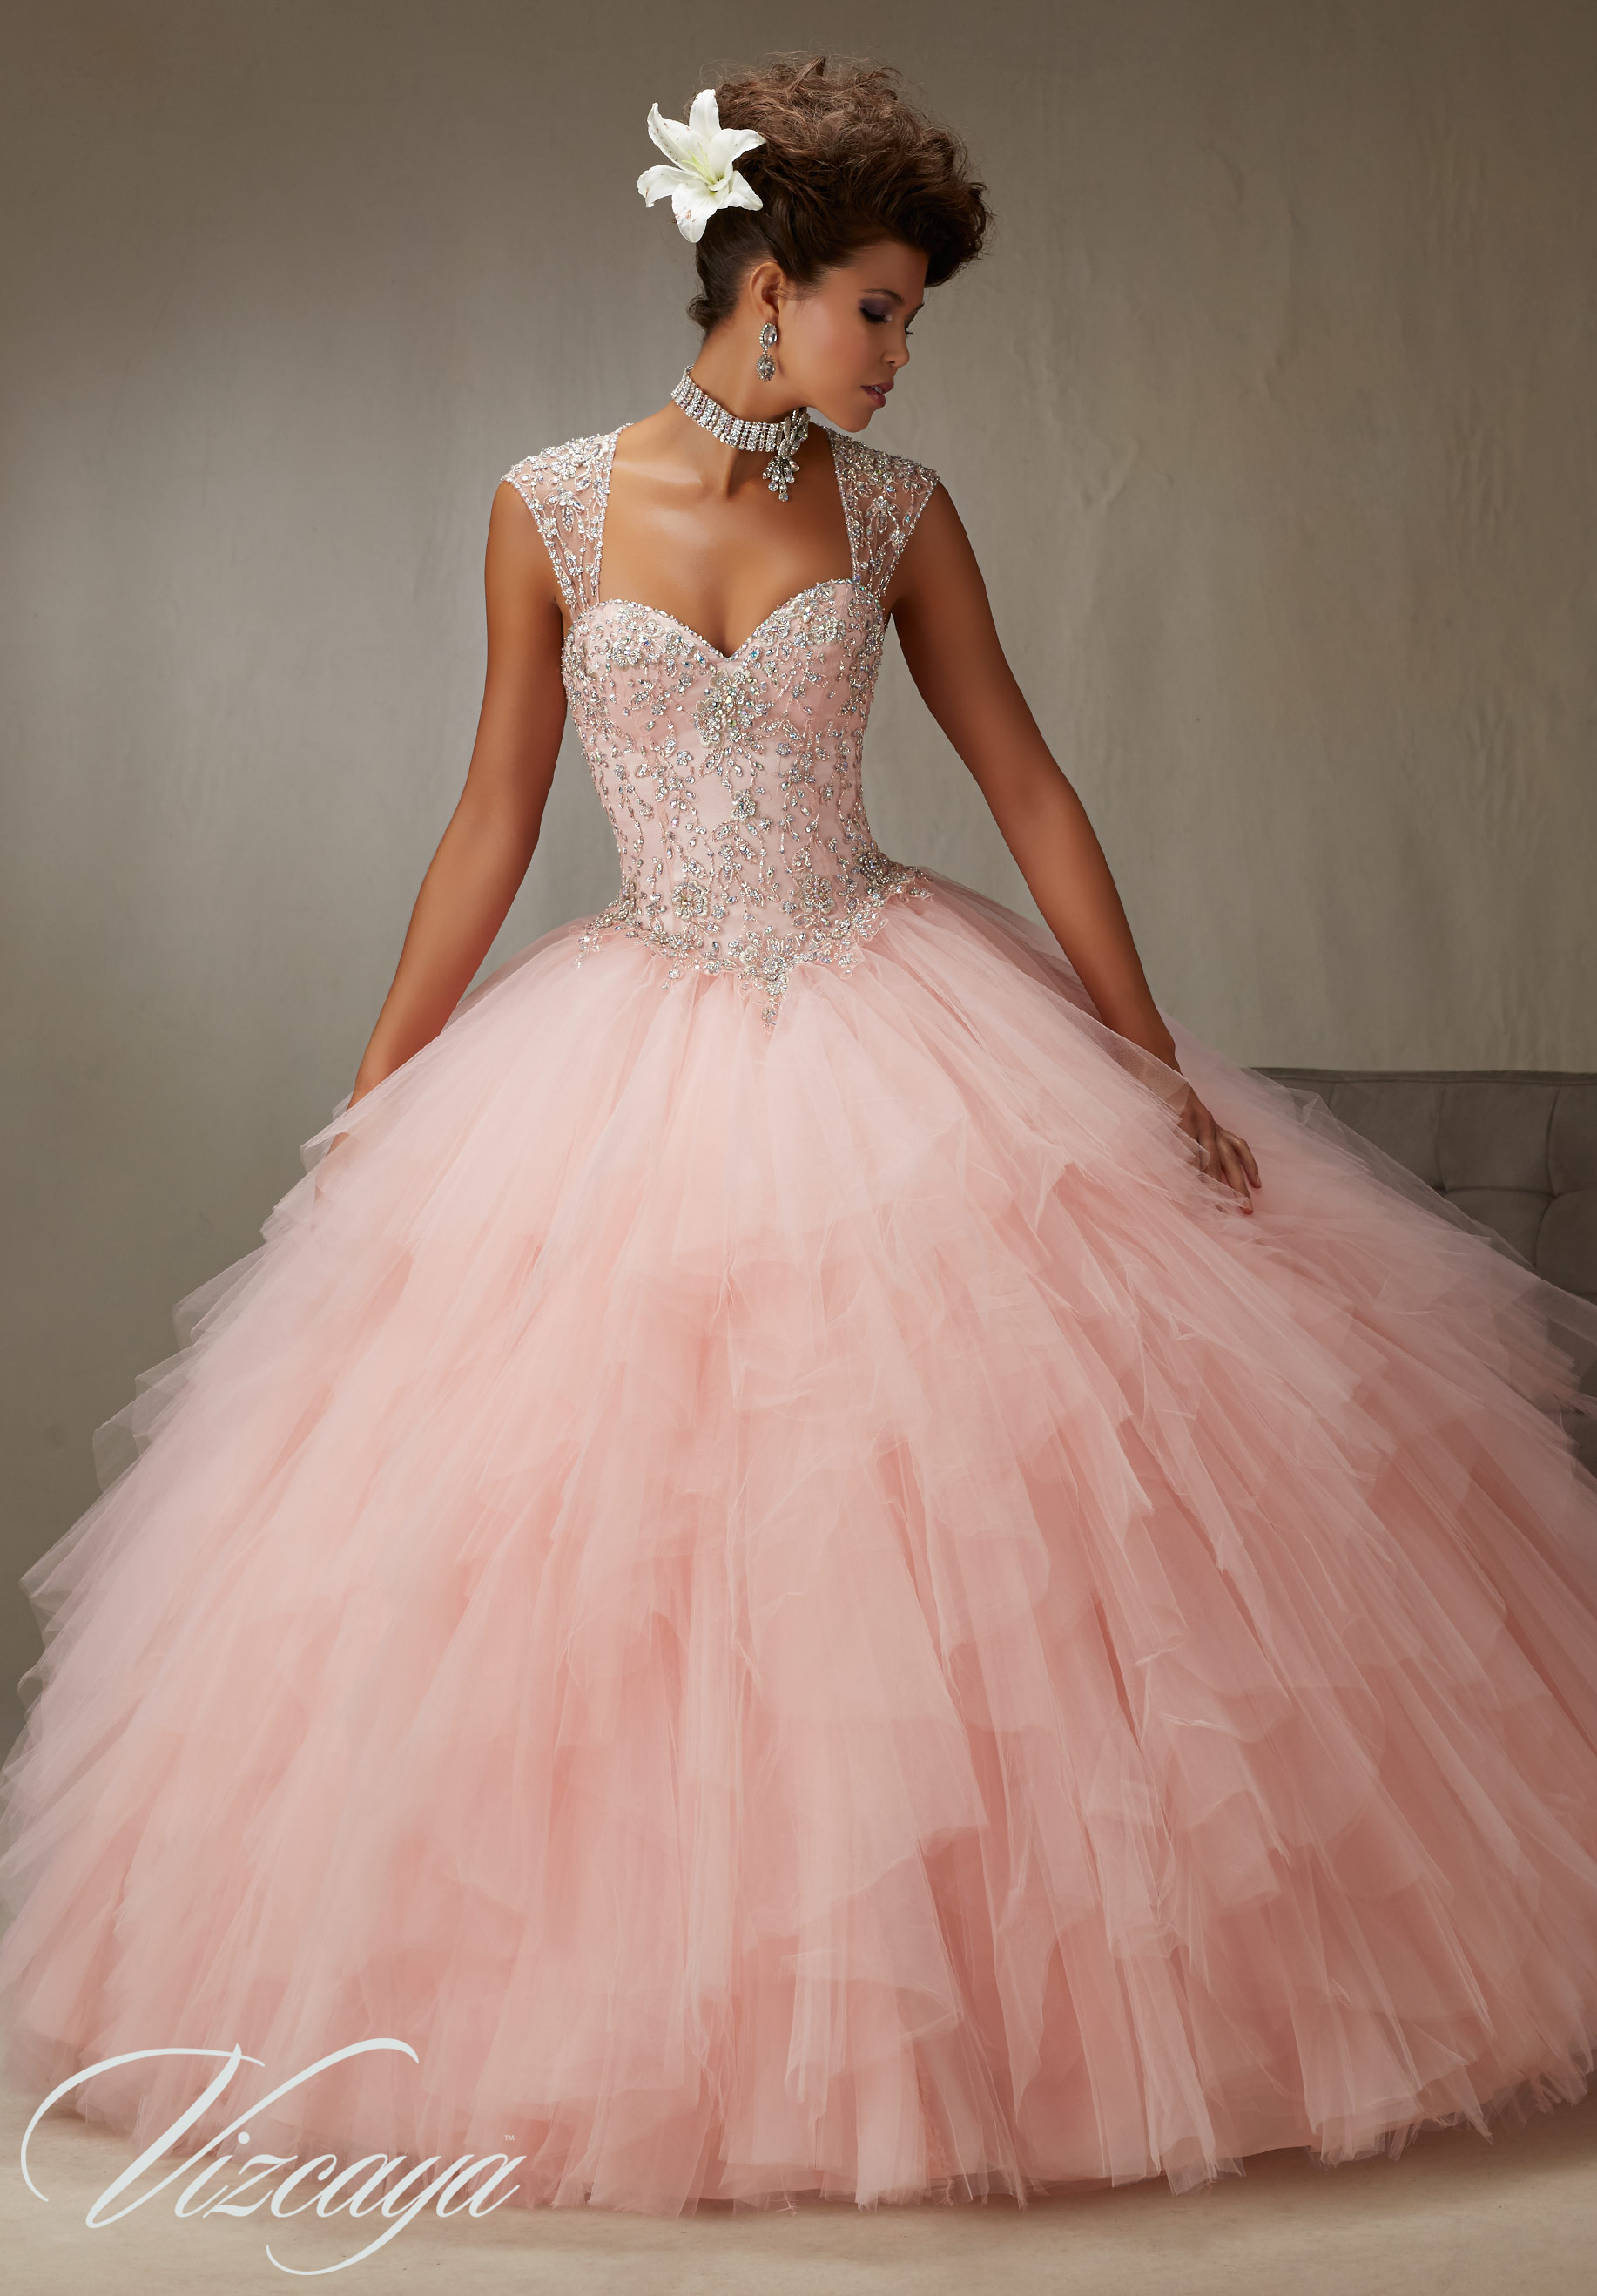 ed54f137004 Quinceanera Dress 89066 EMBROIDERY AND BEADING ON A RUFFLED TULLE SKIRT